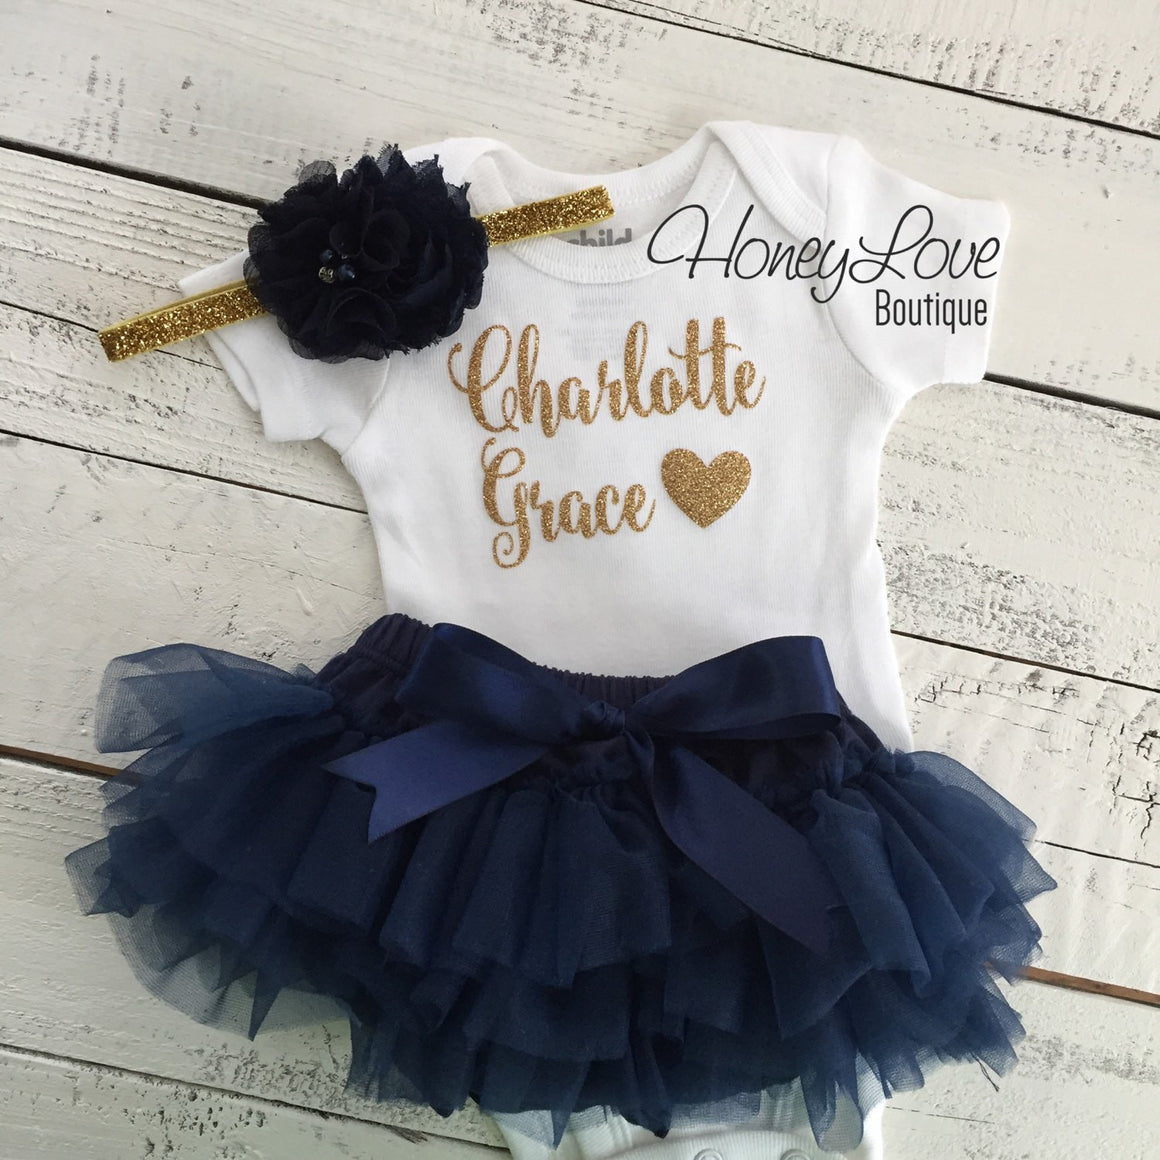 PERSONALIZED SET gold glitter name shirt bodysuit, navy blue ruffle tutu skirt bloomers, newborn baby girl take home hospital outfit - HoneyLoveBoutique